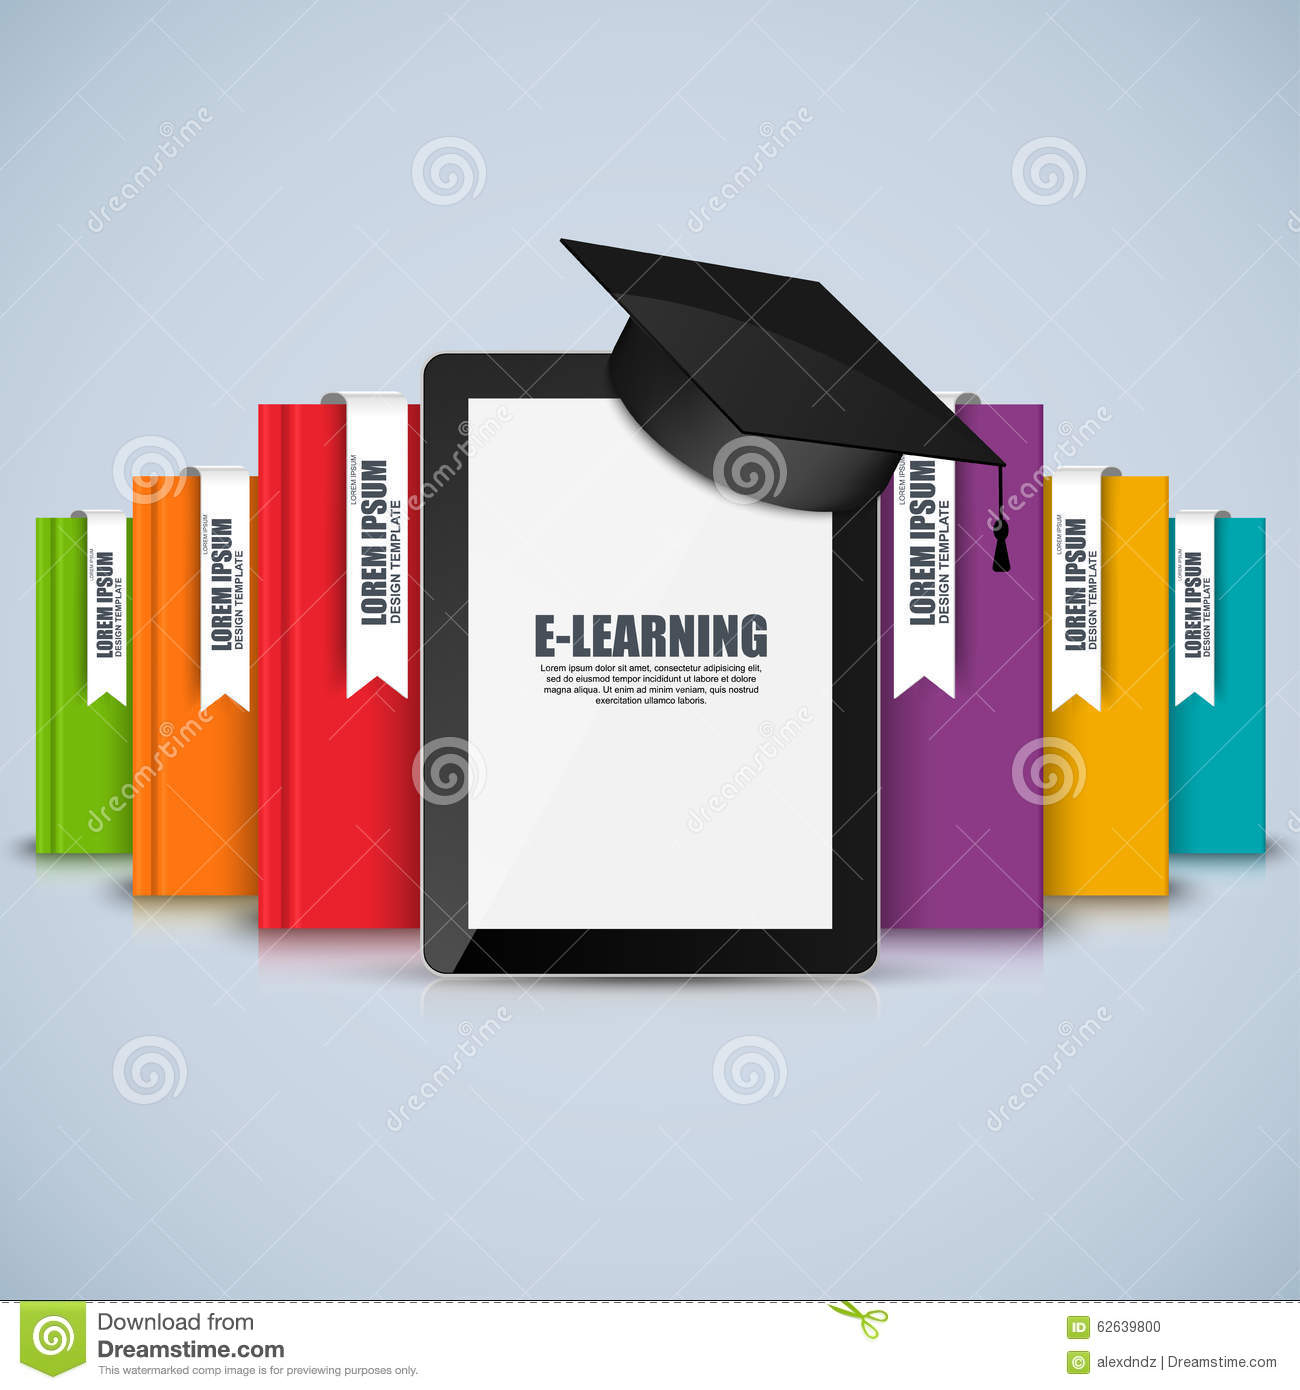 E learning poster designs - Books Step Education Infographic Vector Design Template